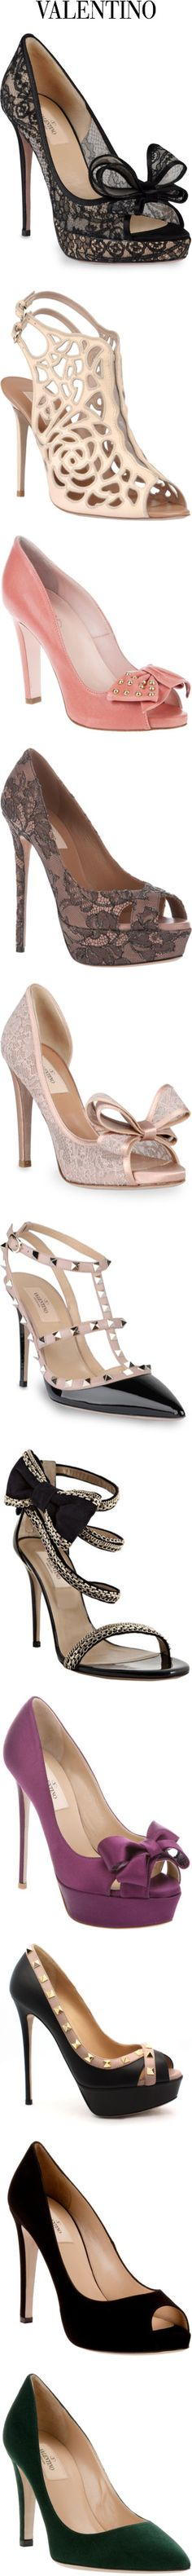 A collection of gorgoues Valentino heels, sandals and pumps